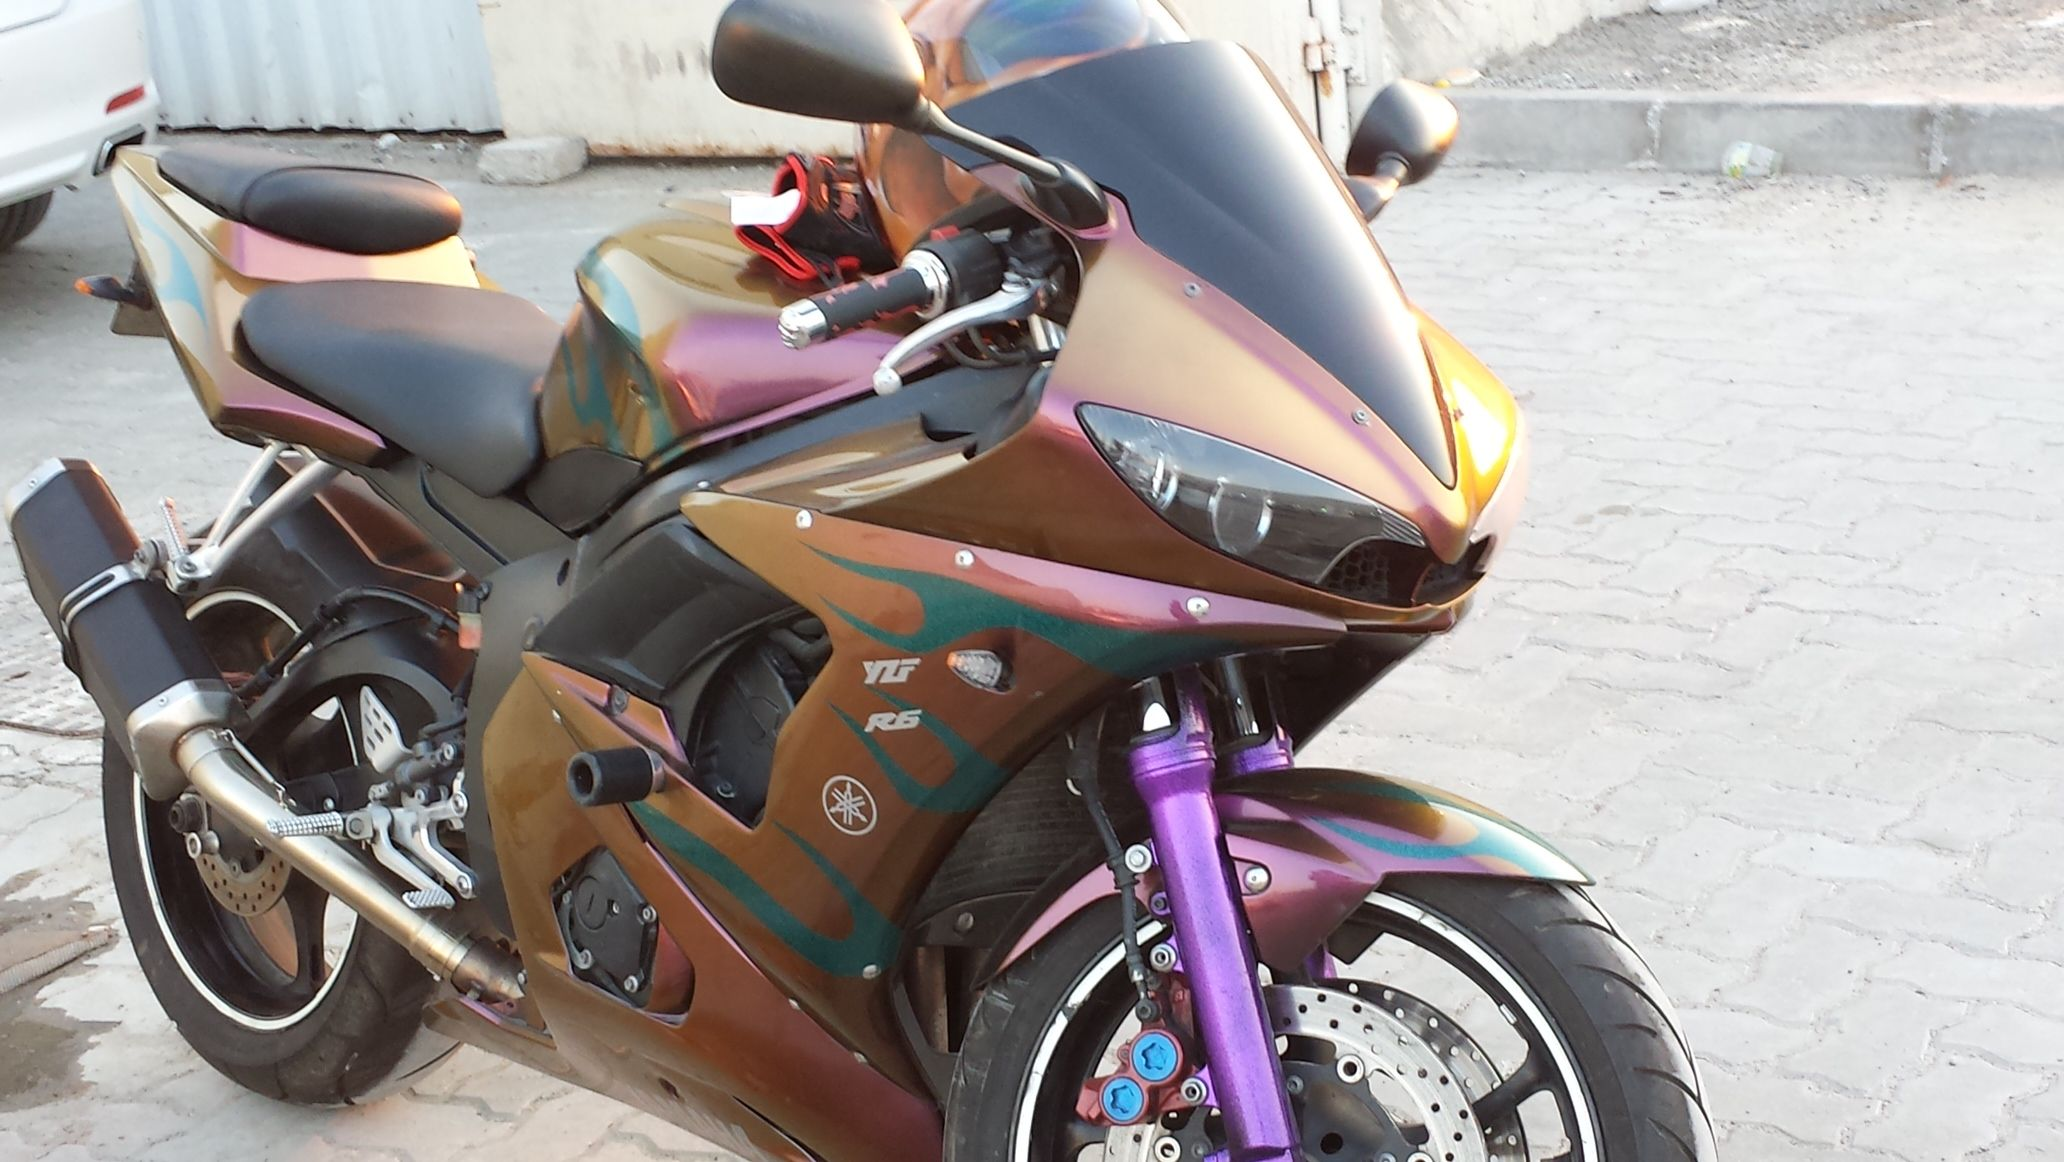 Chameleon Pearls Beautiful Motorcycles Car Painting Super